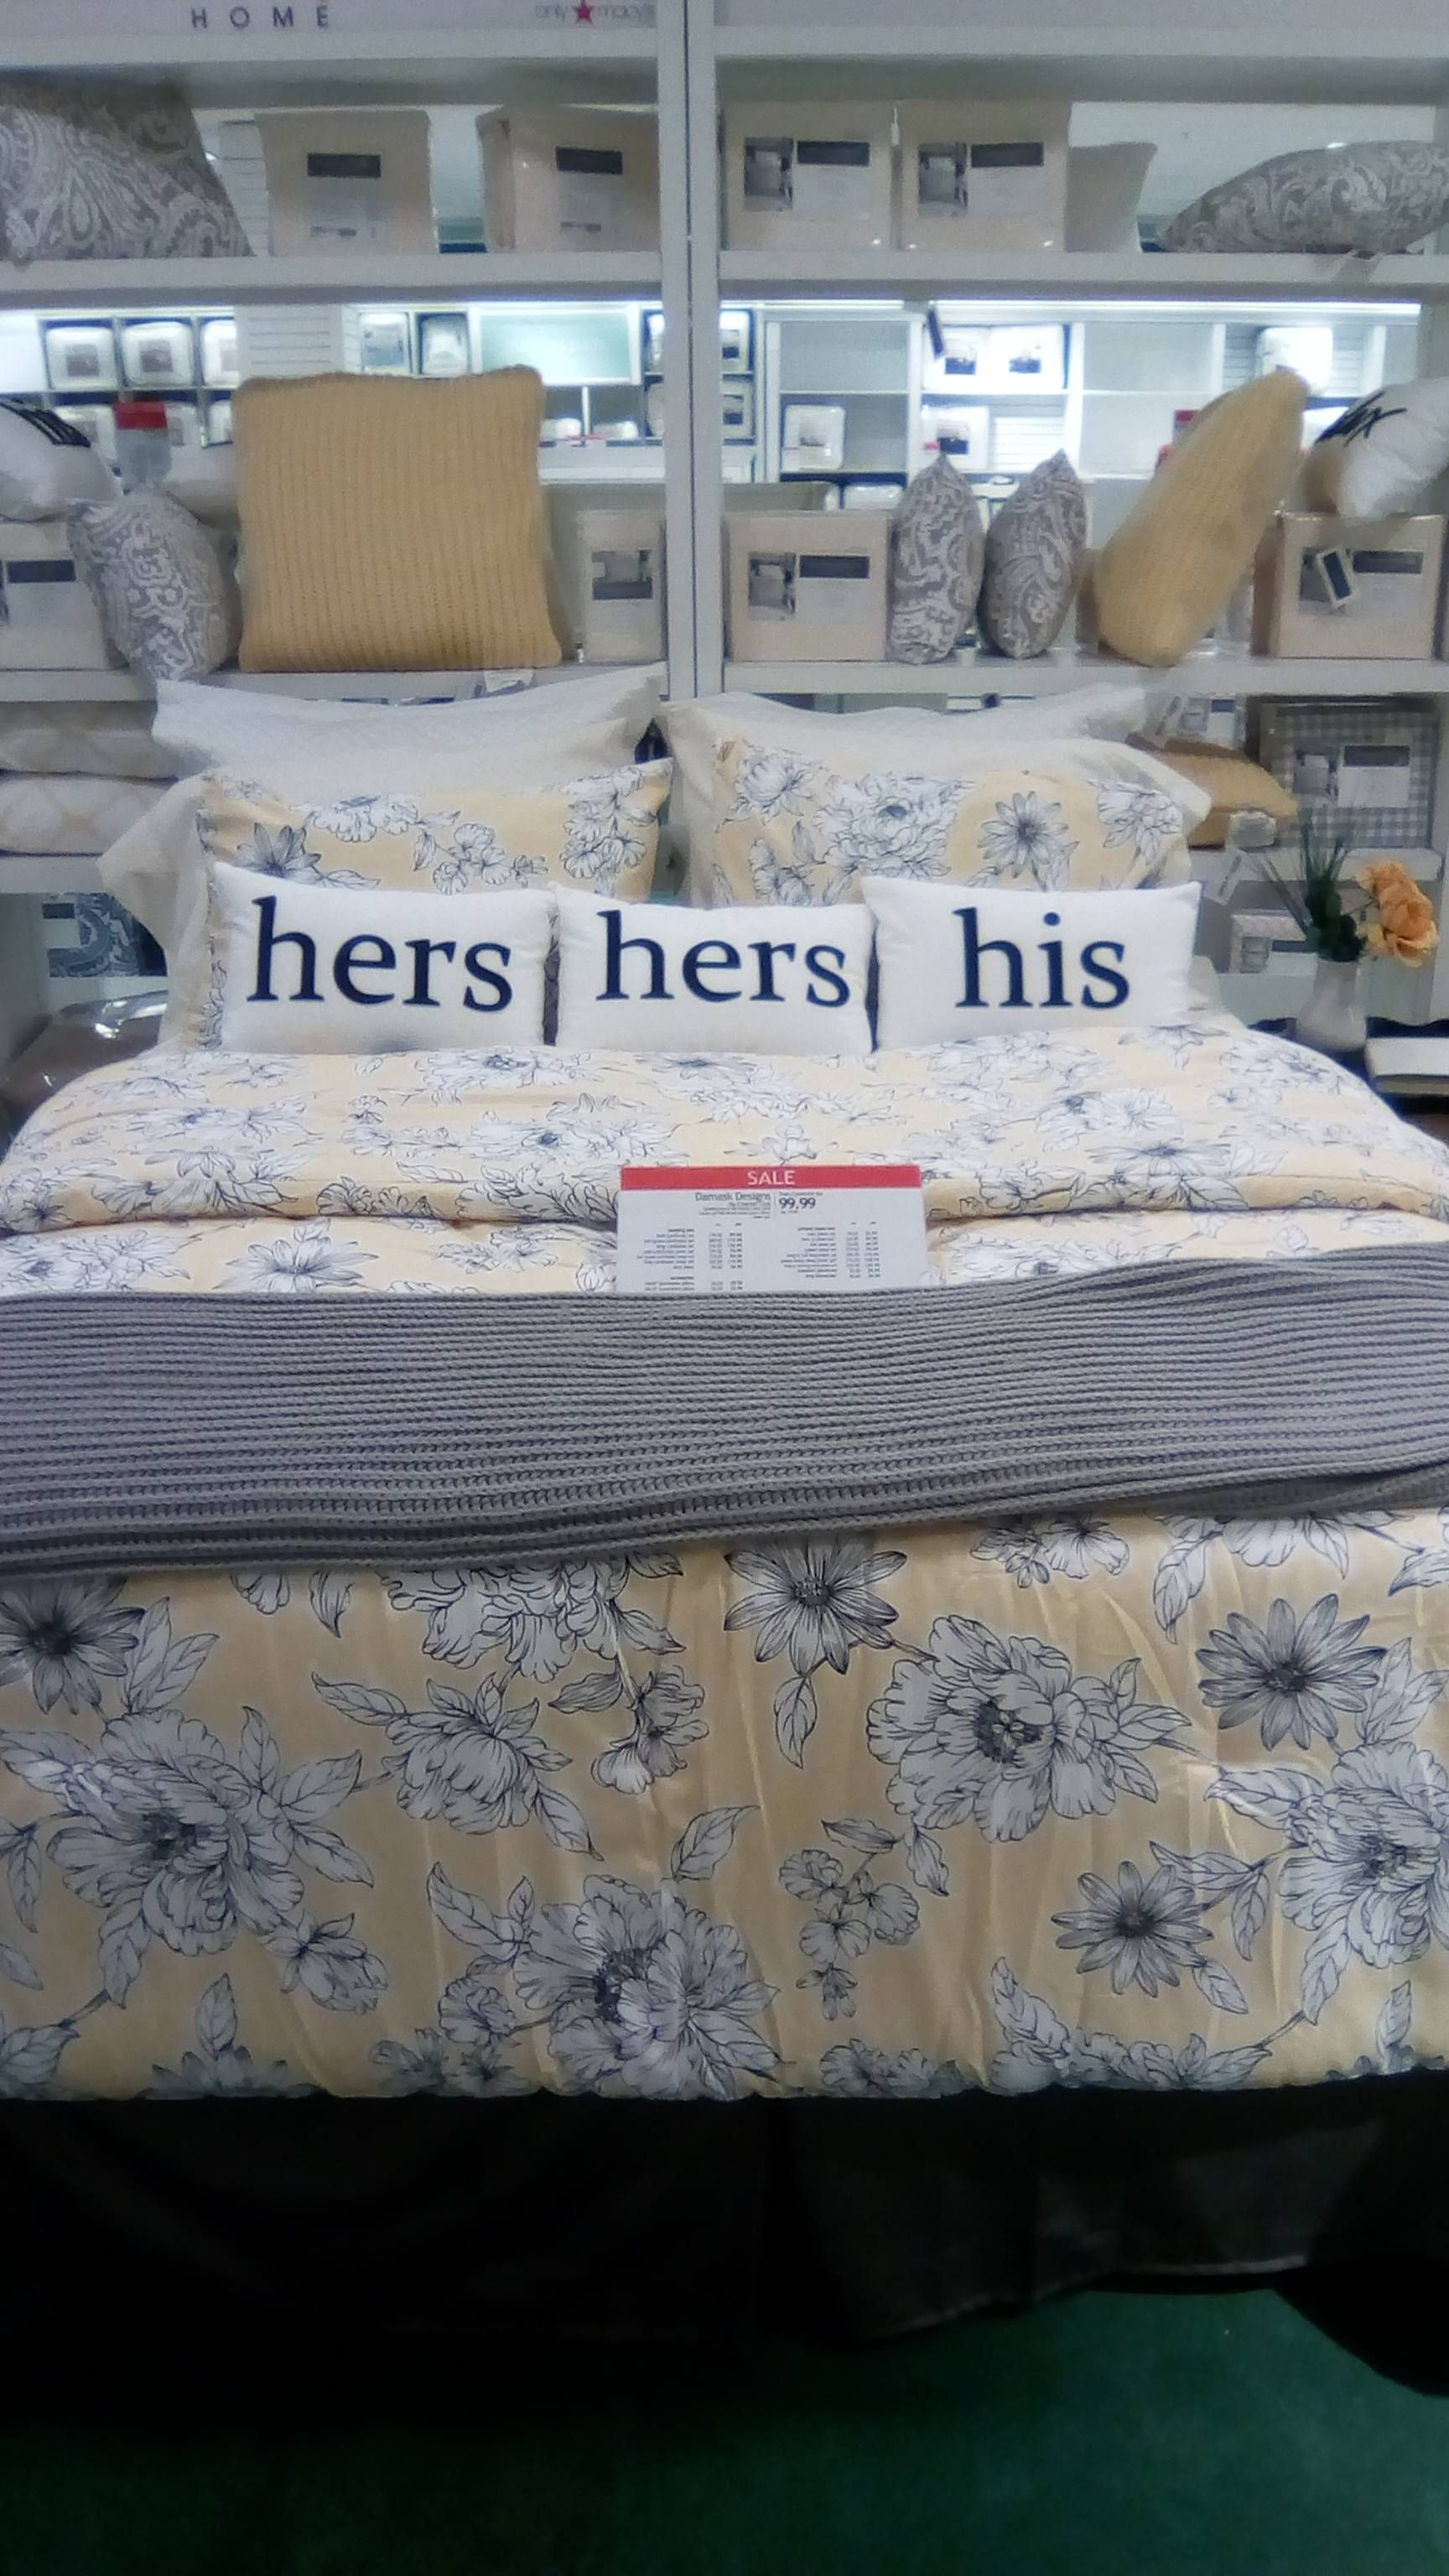 So I just corrected/improved the bedding display at Macy's